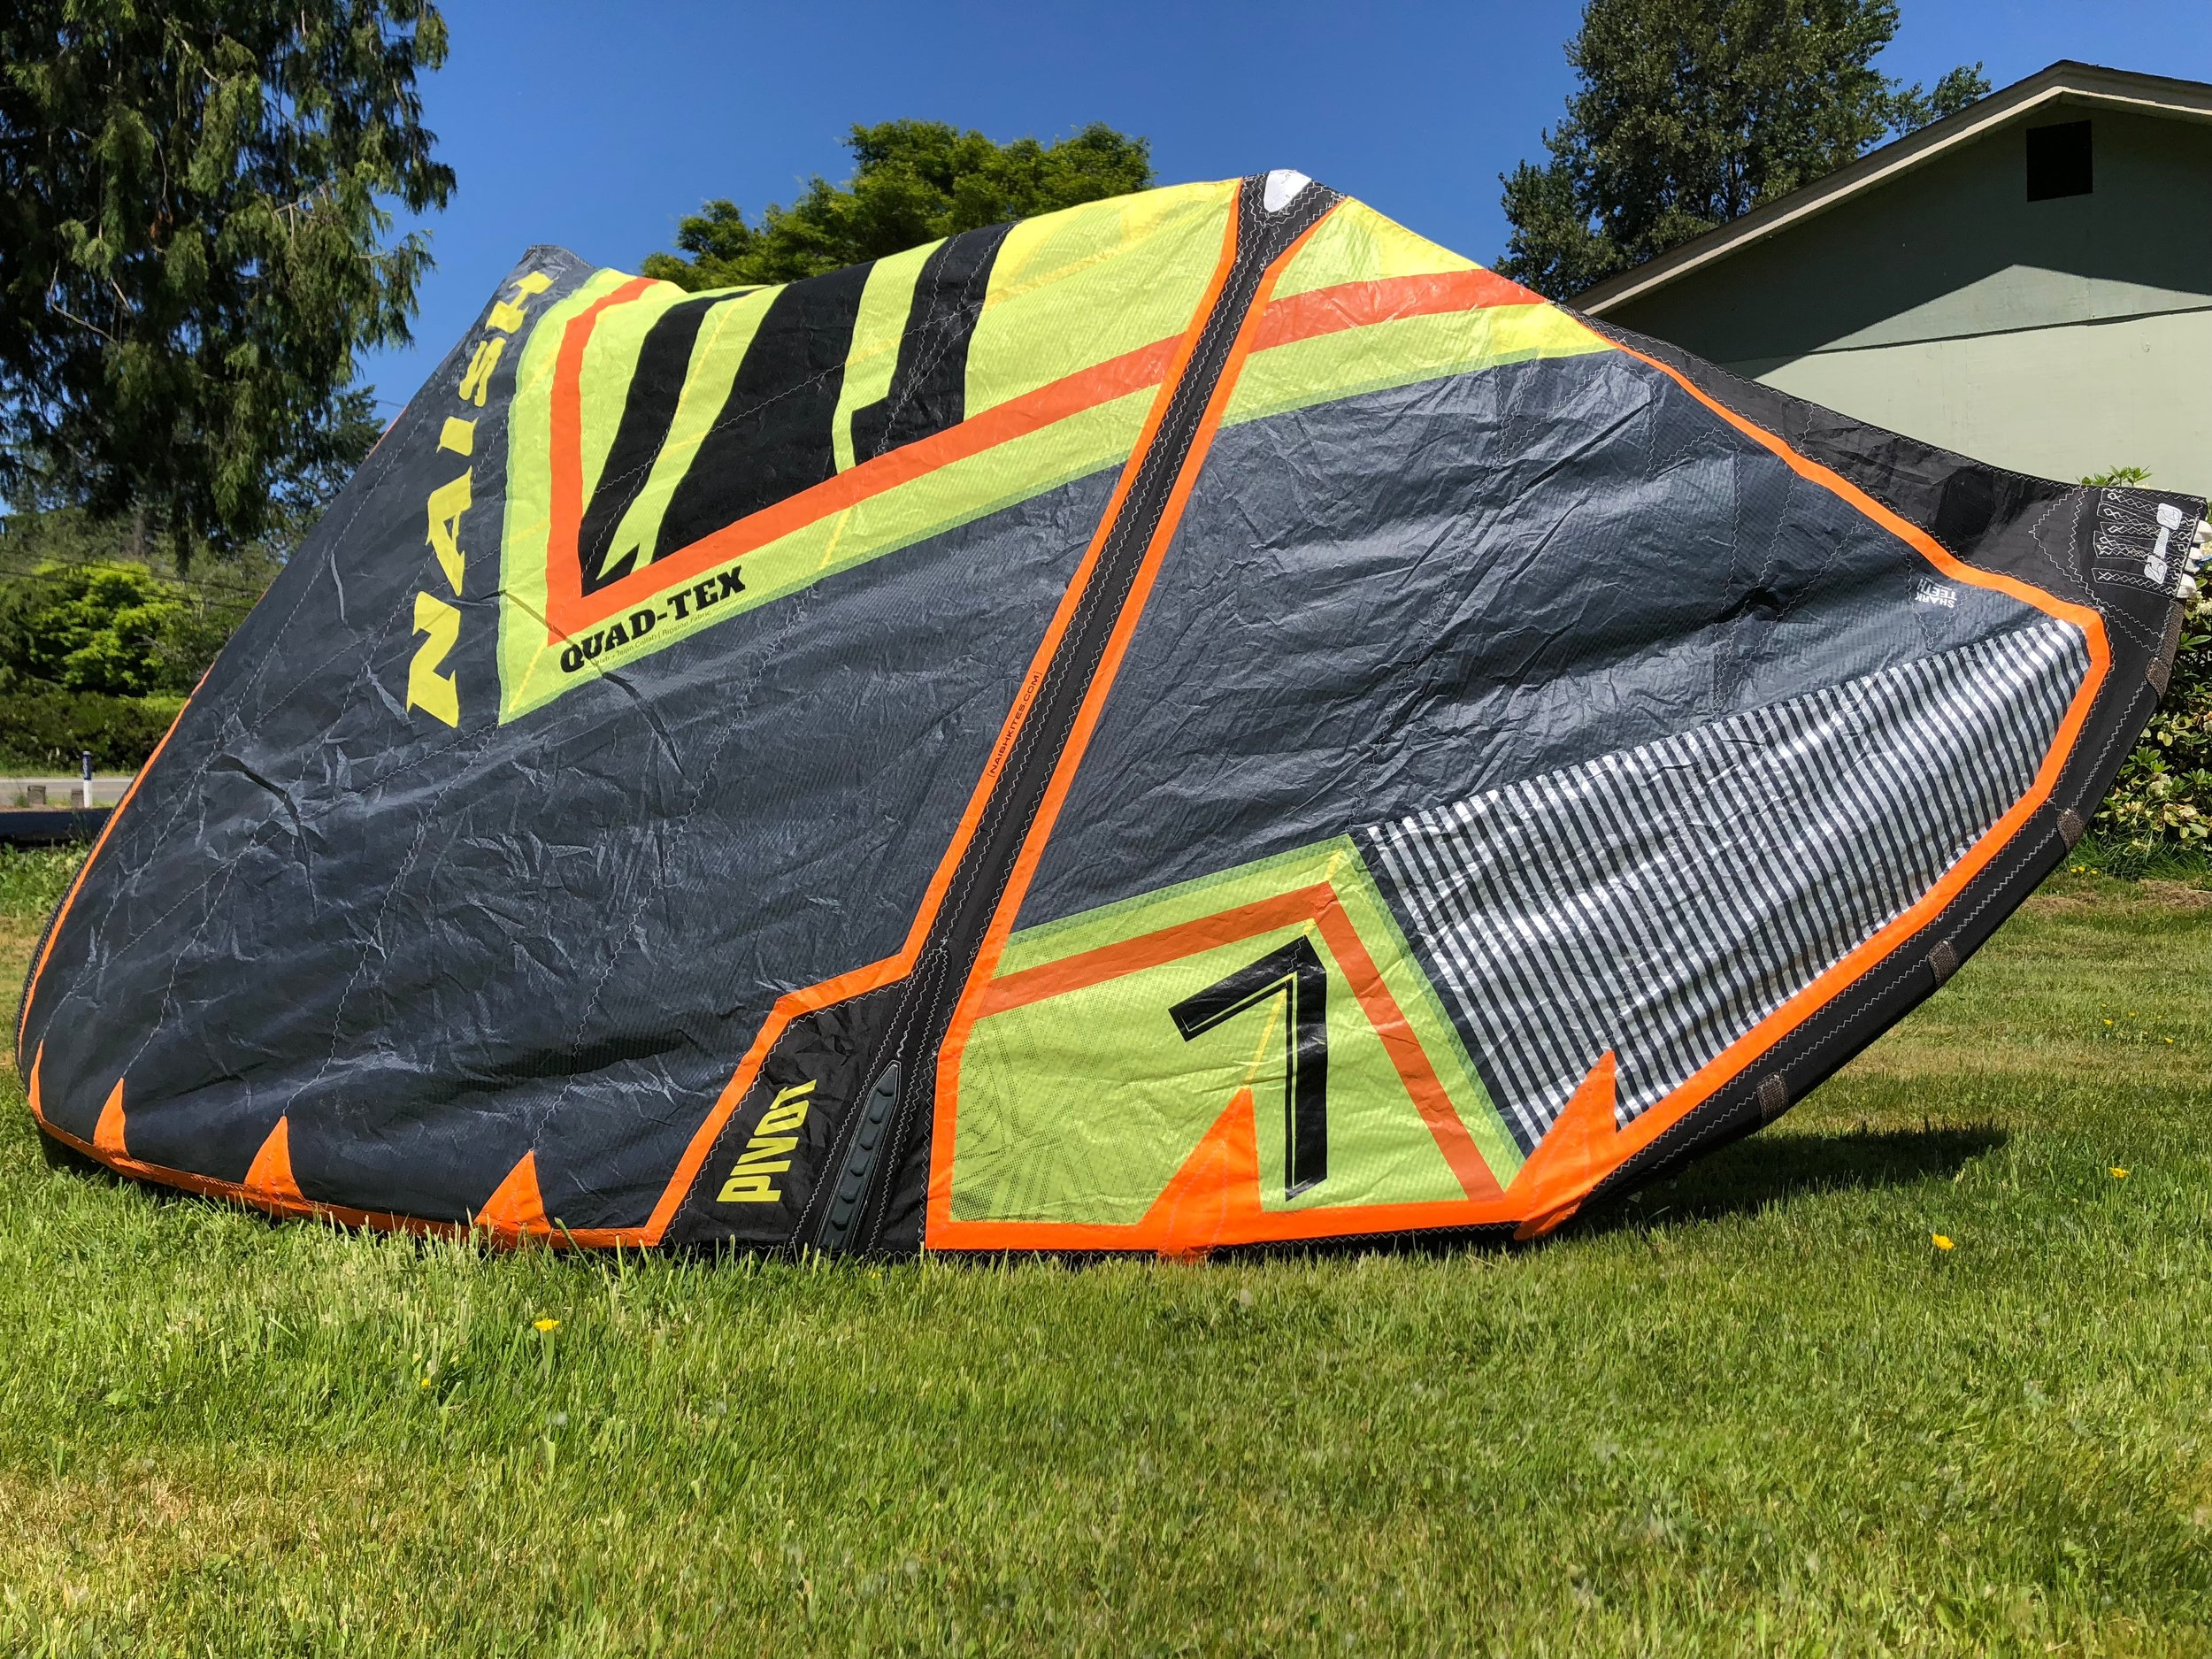 Naish Pivot 7m 2018 - $575 Used / Like New - The Pivot is one of Naish Kiteboarding's most popular kites because it is so well rounded and suits almost any rider and riding style. Flies fast and pivots for sharp turns, it has become